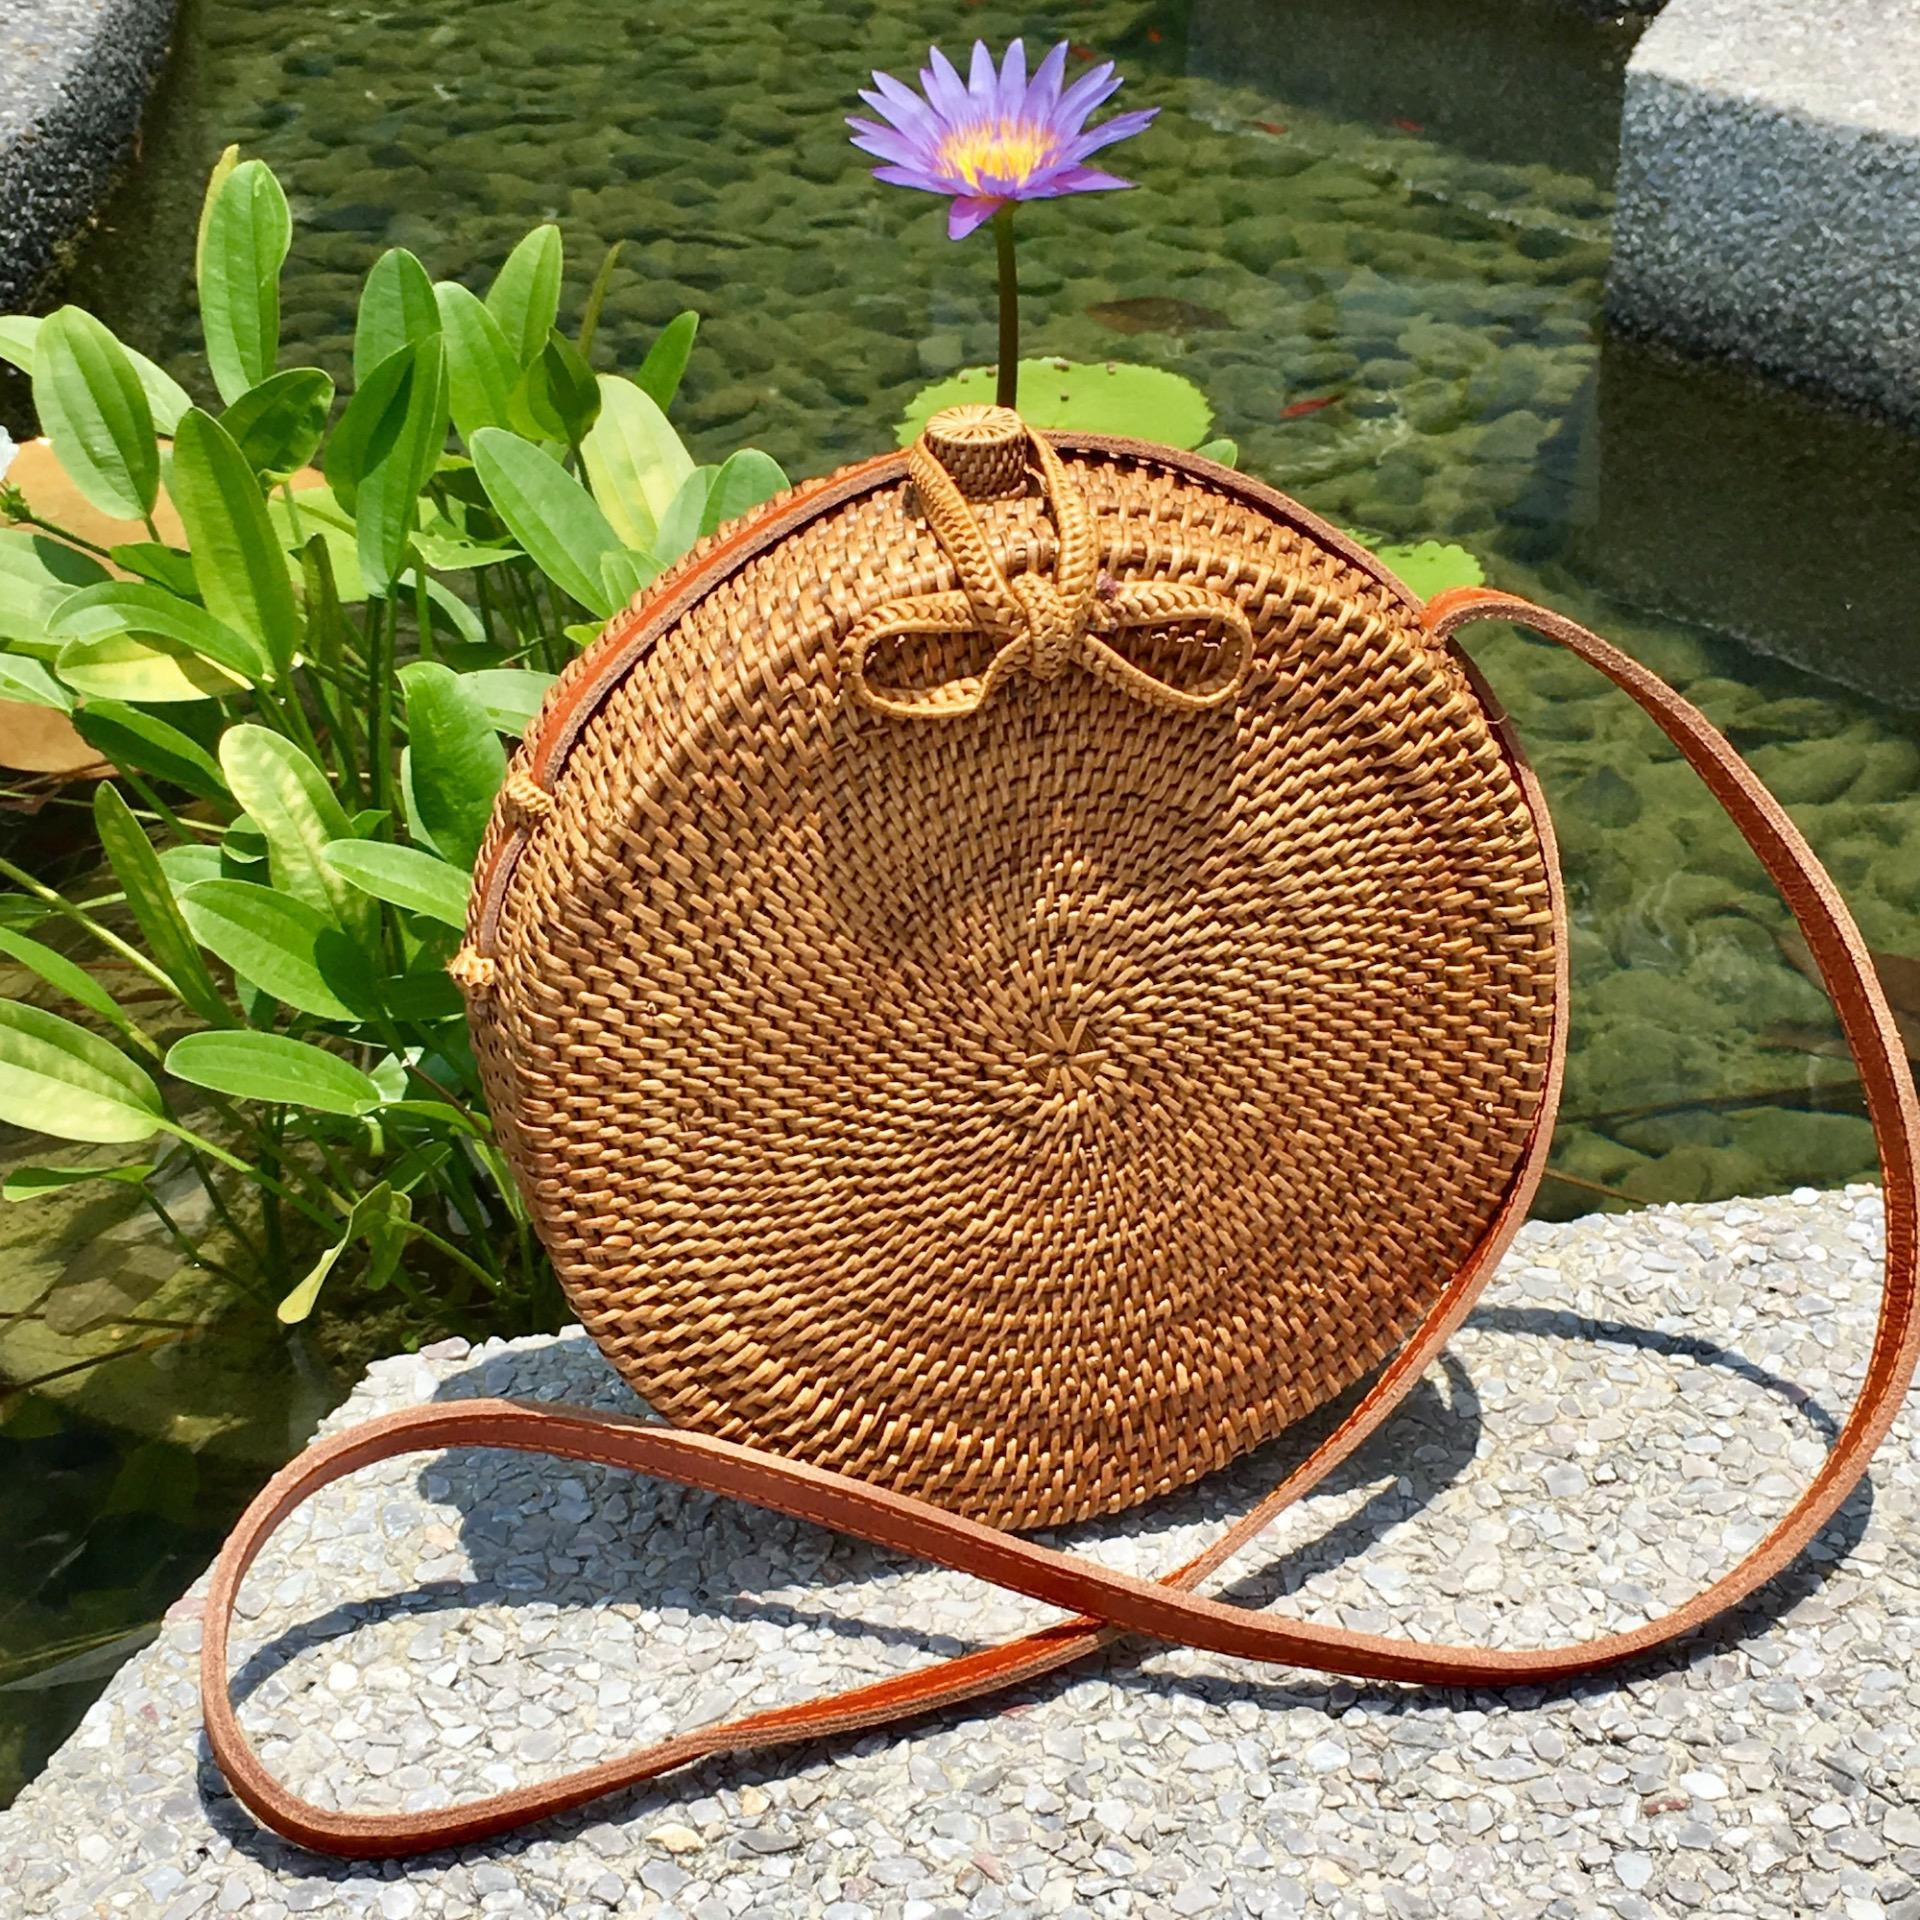 Low Cost Bulan 20 Cm Handwoven Rattan Round Bag Woven Clasp Batik Lining Shoulder Bag Cross Body Bag Summer Bag Handbag Leather Sling Strap Boho Chic Ata Bag Vintage Style Beach Bag